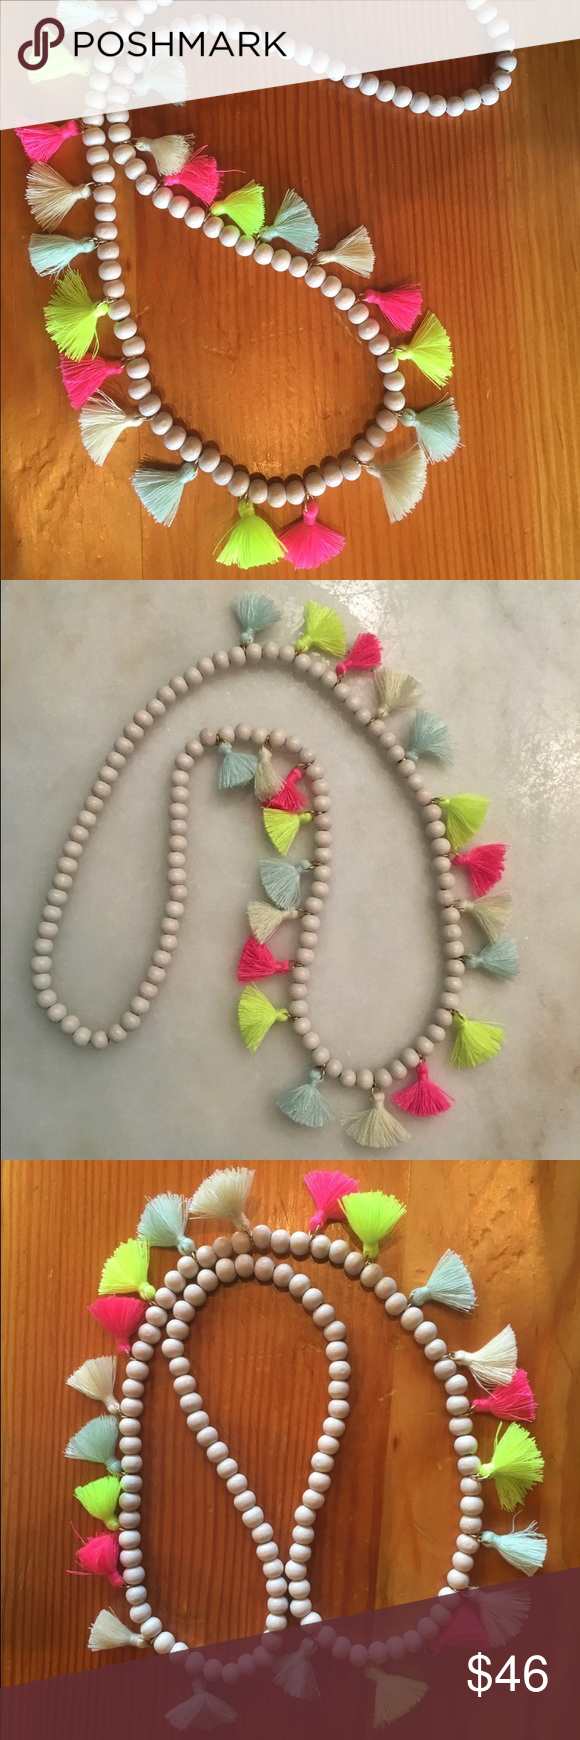 Anthropologie Multicolored tassel necklace Anthropologie Multicolored tassel statement necklace. Great way to spice up and outfit and perfect for the summer time!! Hard to part with this necklace. It's about 14.5 inches in length and 22 tassels overall. Beautiful colors!! Anthropologie Jewelry Necklaces